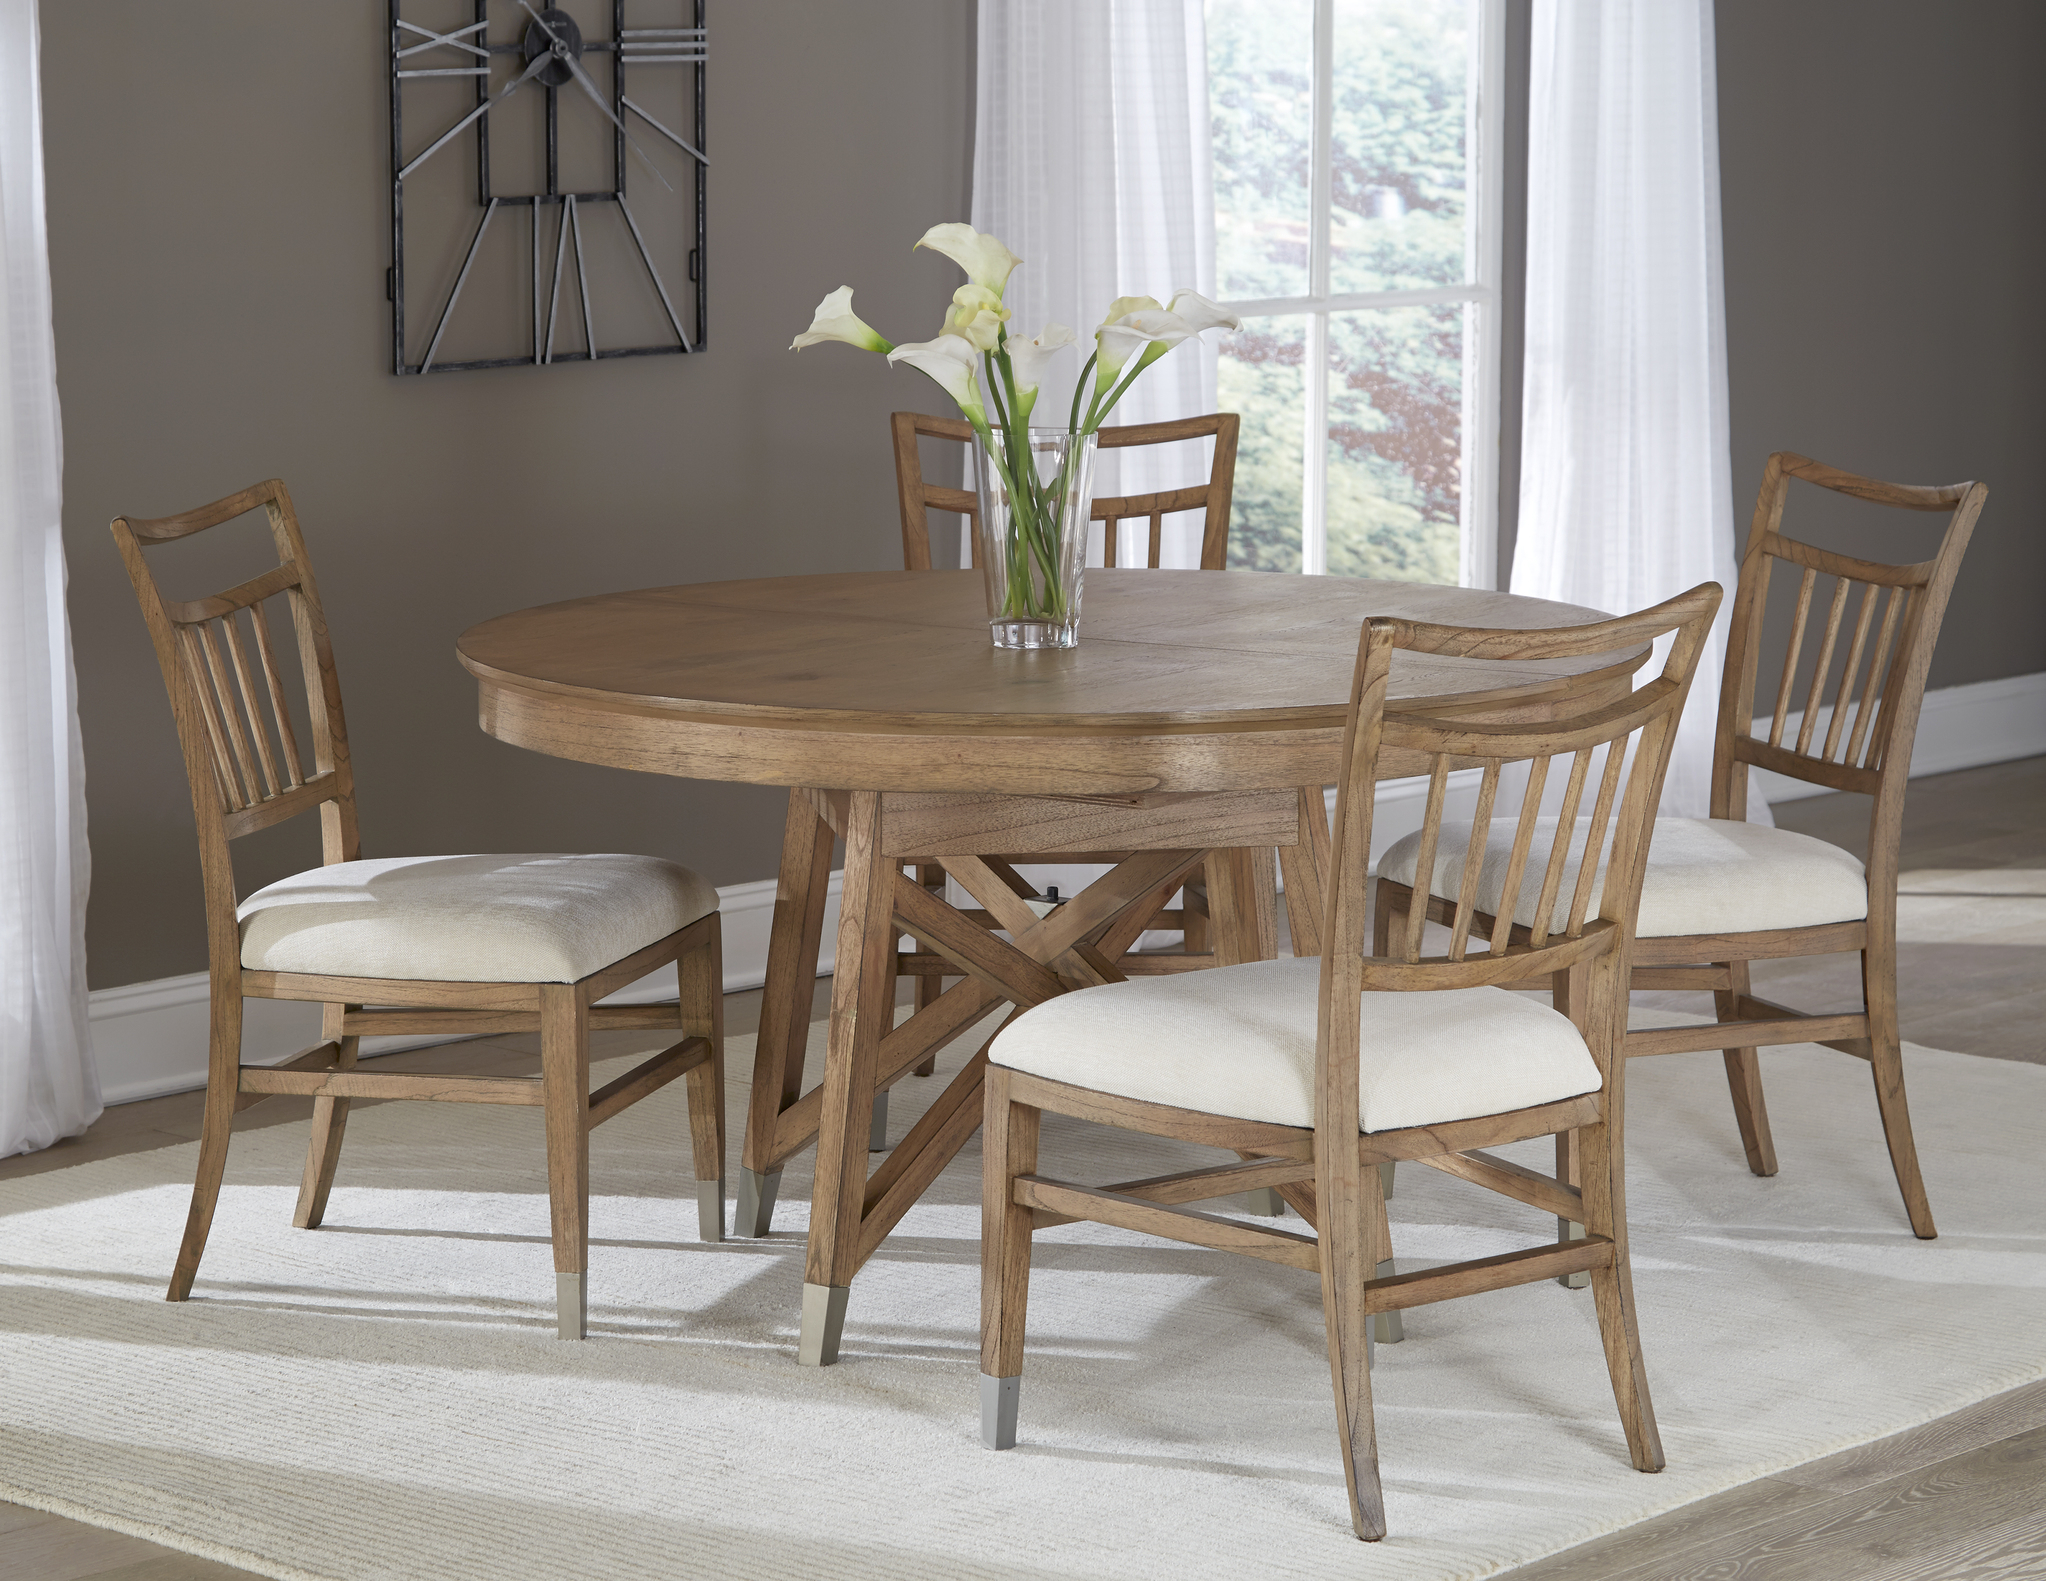 The Avery Park Round Table Dining Room Collection – In Newest Avery Round Dining Tables (View 2 of 25)